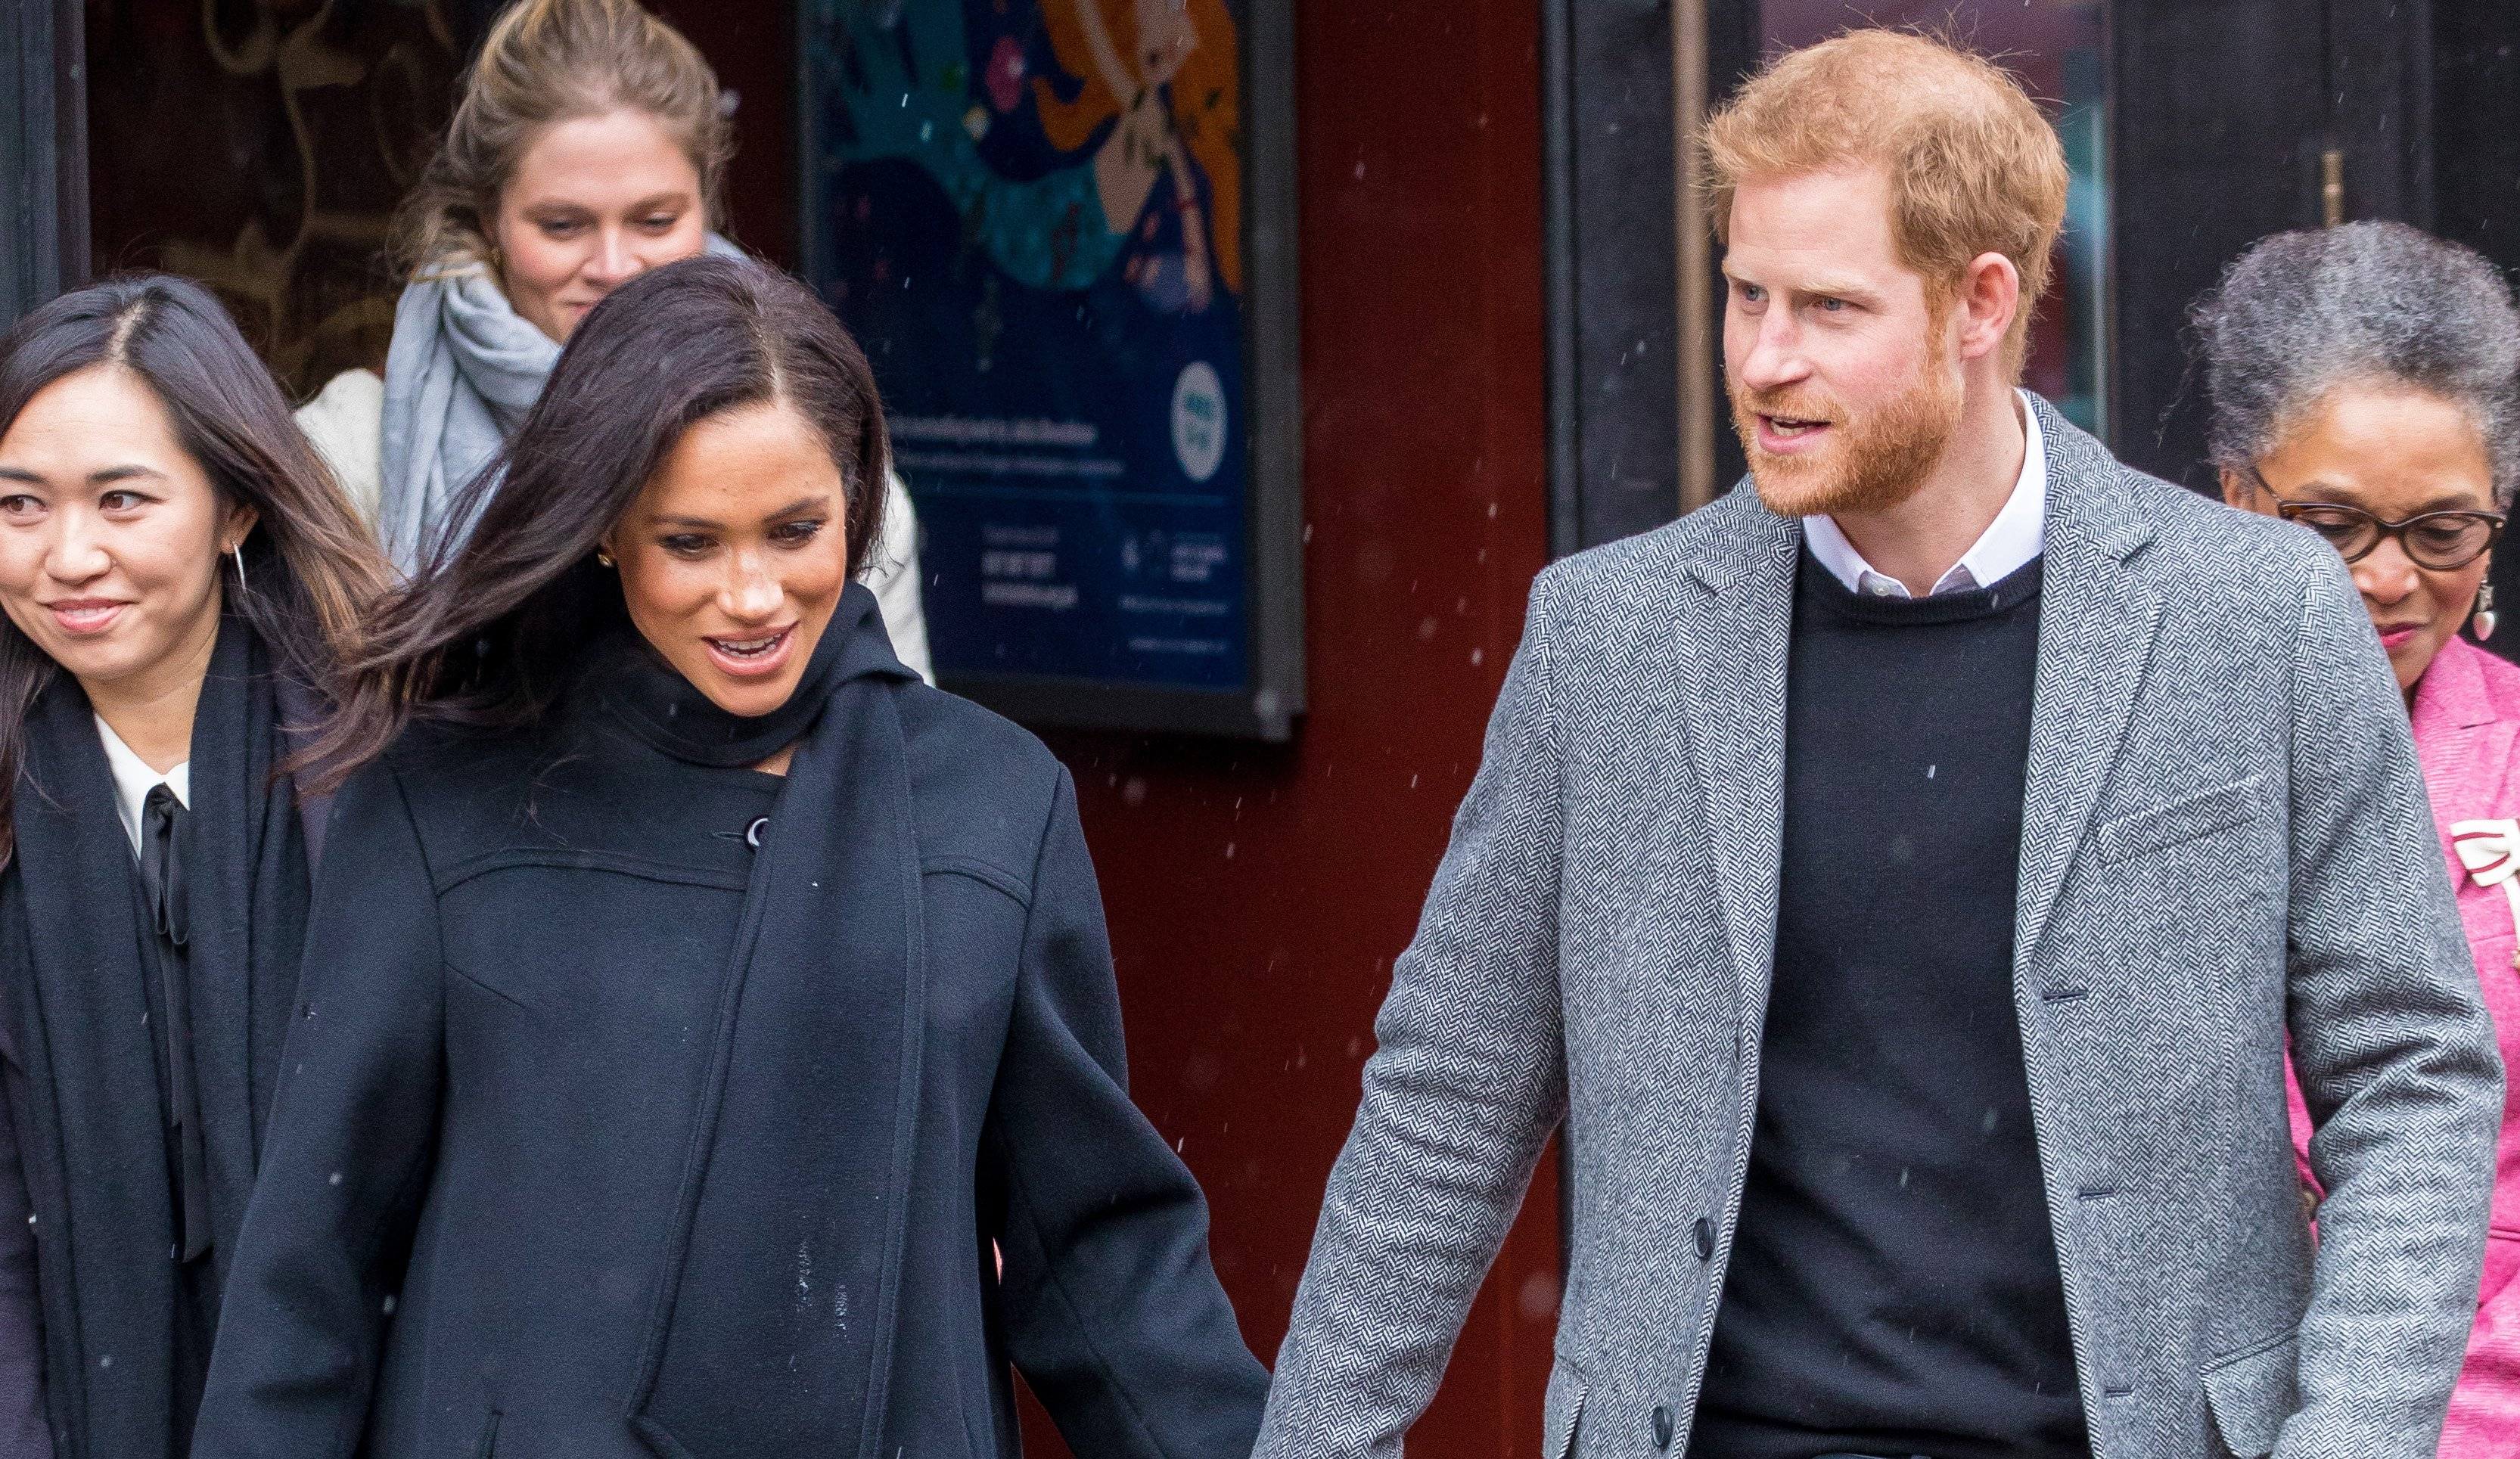 Pregnant Meghan sparks concern as she wears heels in the snow during outing with Harry